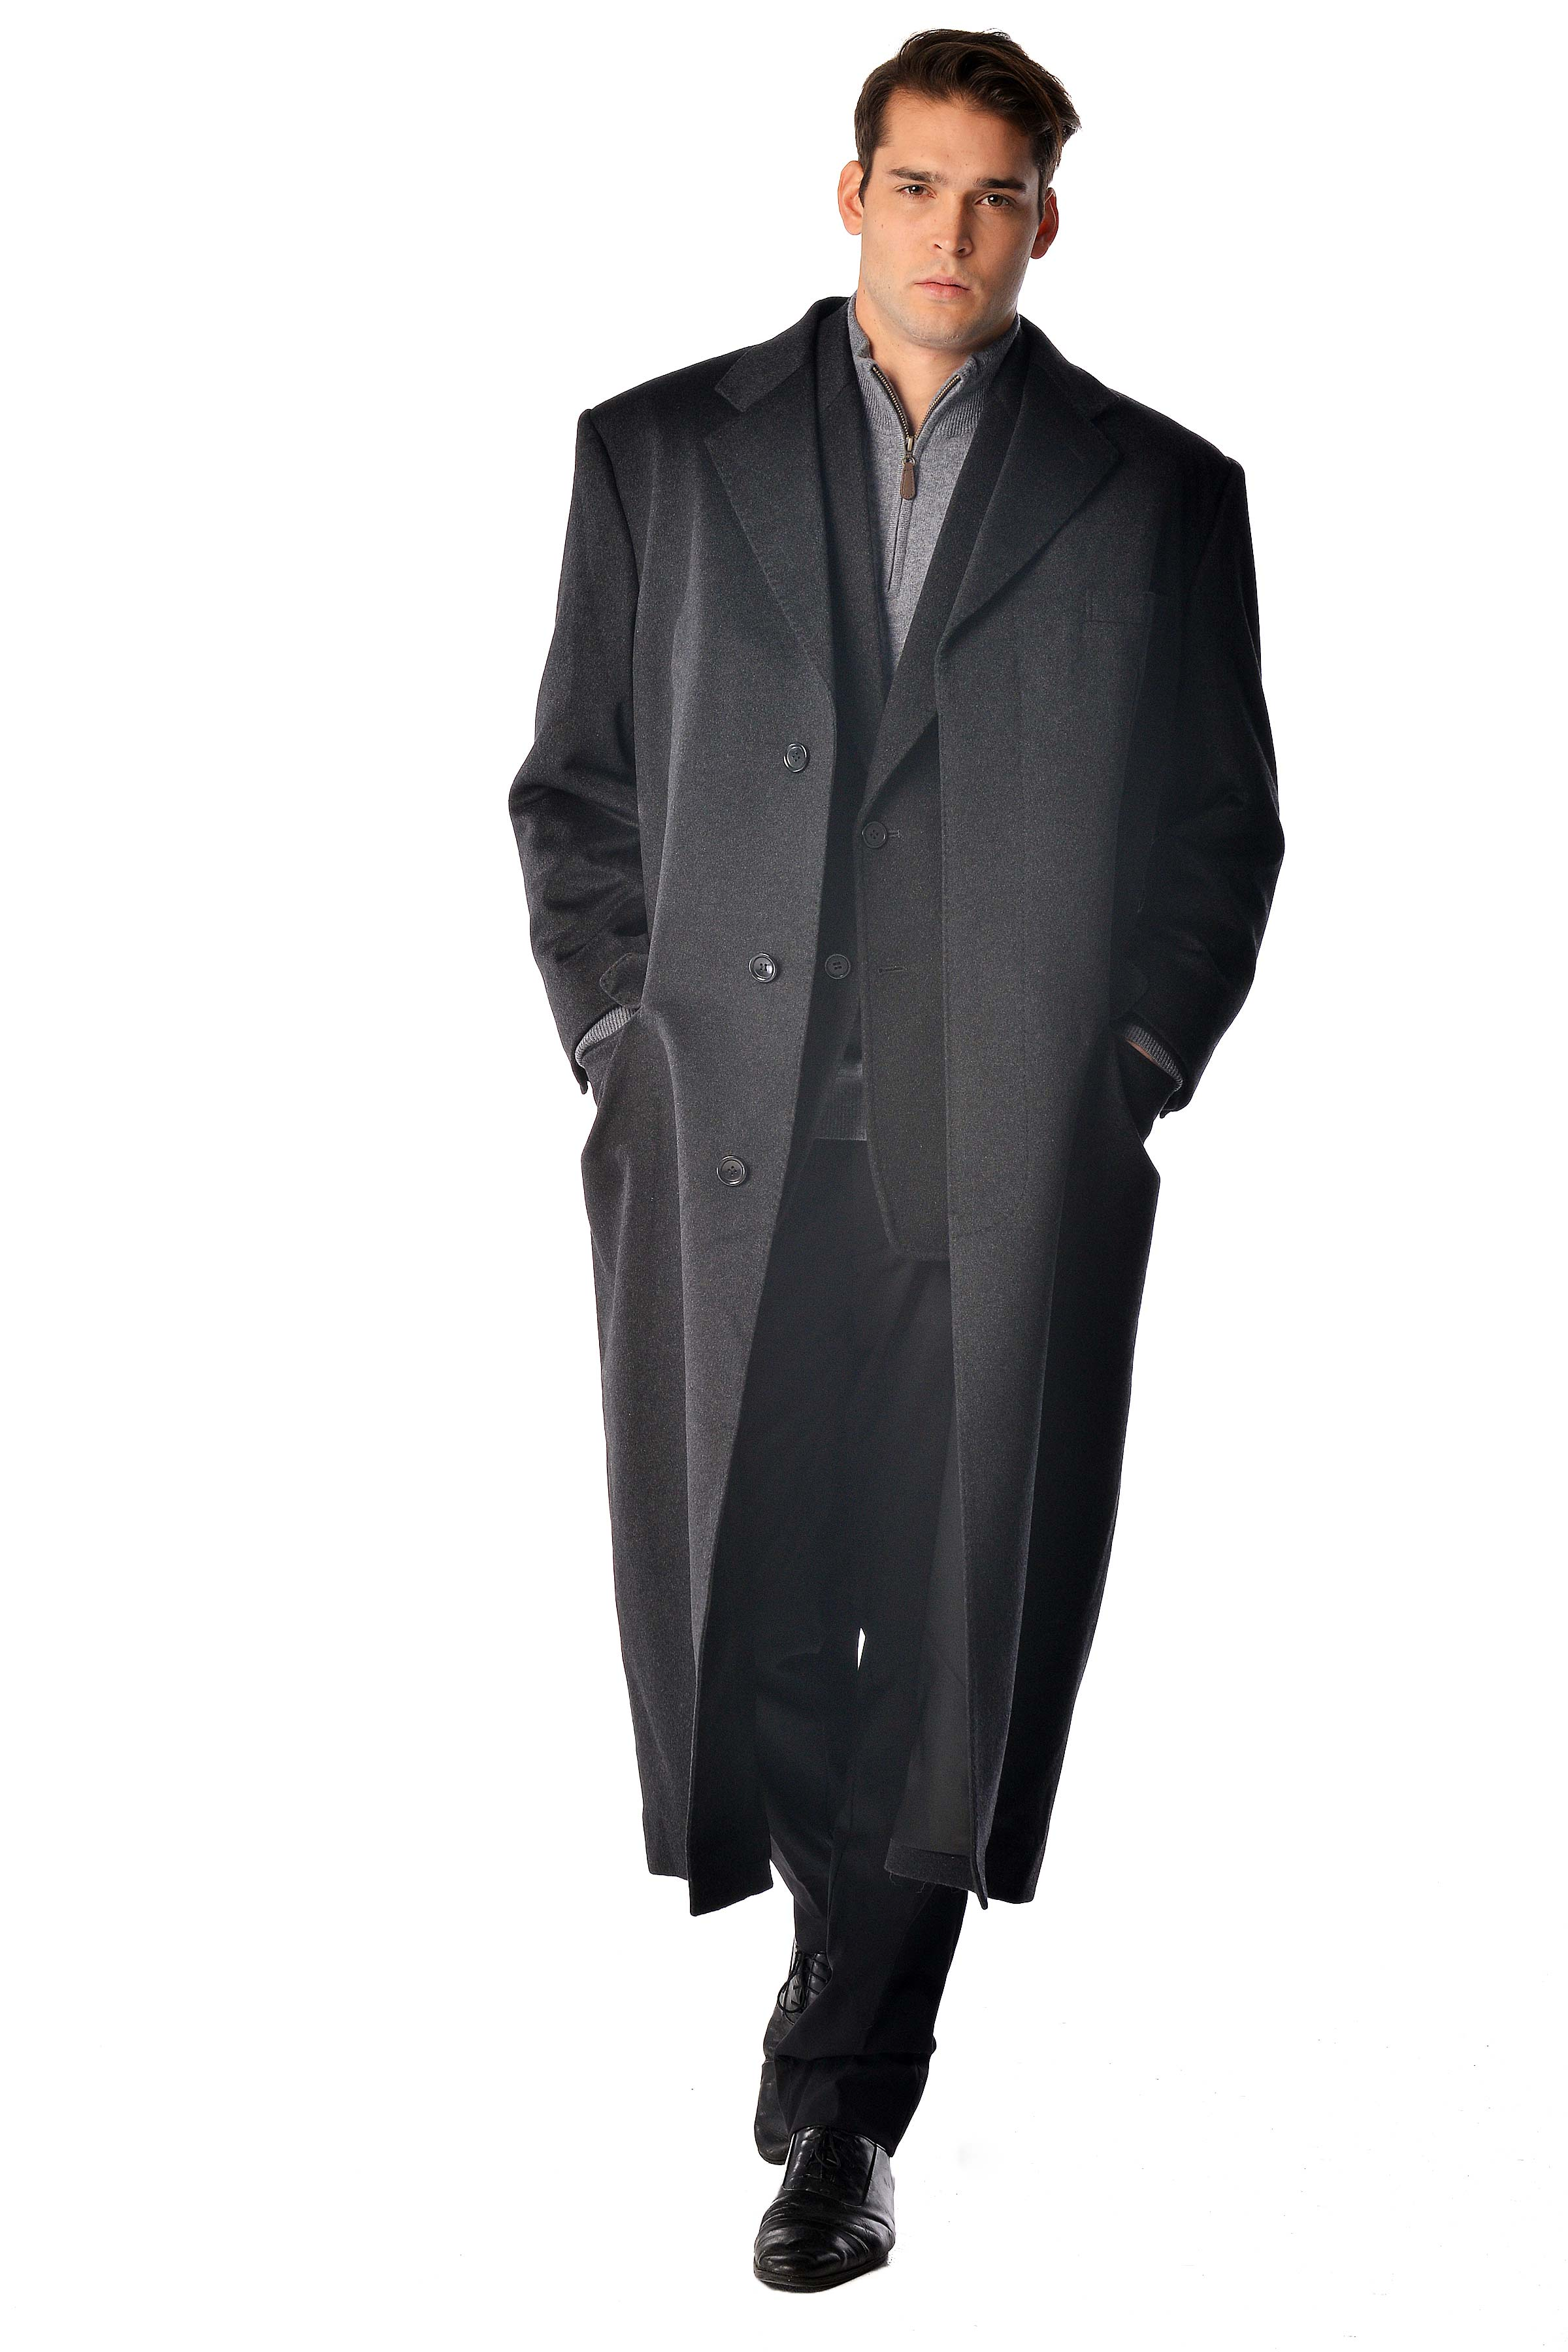 Shop for mens wool overcoat online at Target. Free shipping on purchases over $35 and save 5% every day with your Target REDcard.